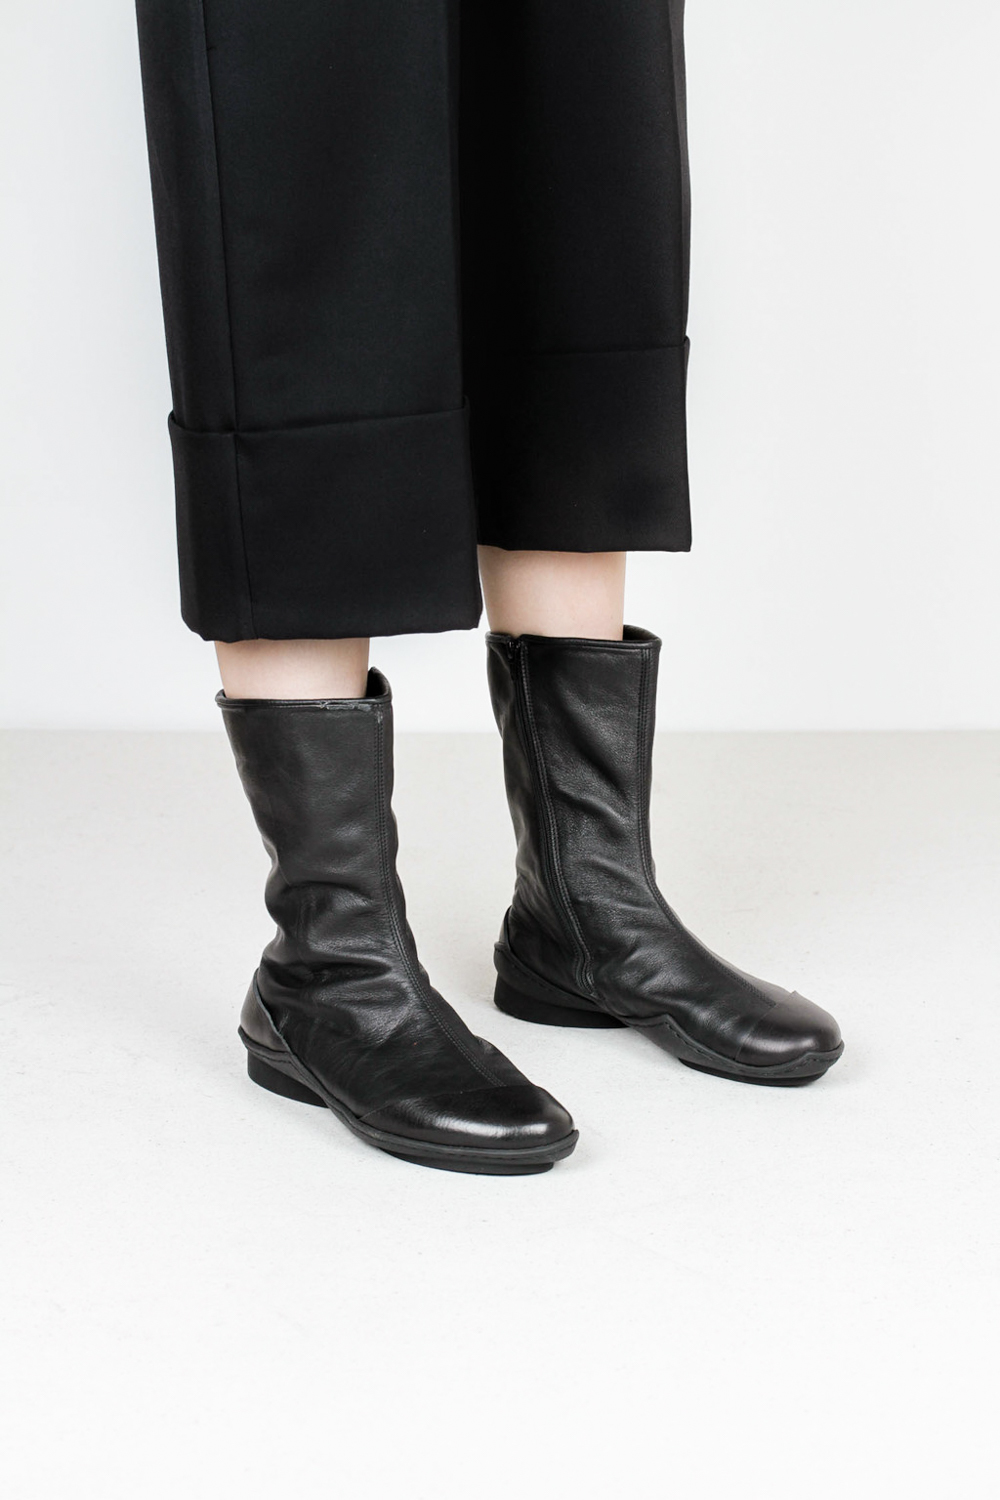 Trippen dolphin f waw blk sft blk leather boots